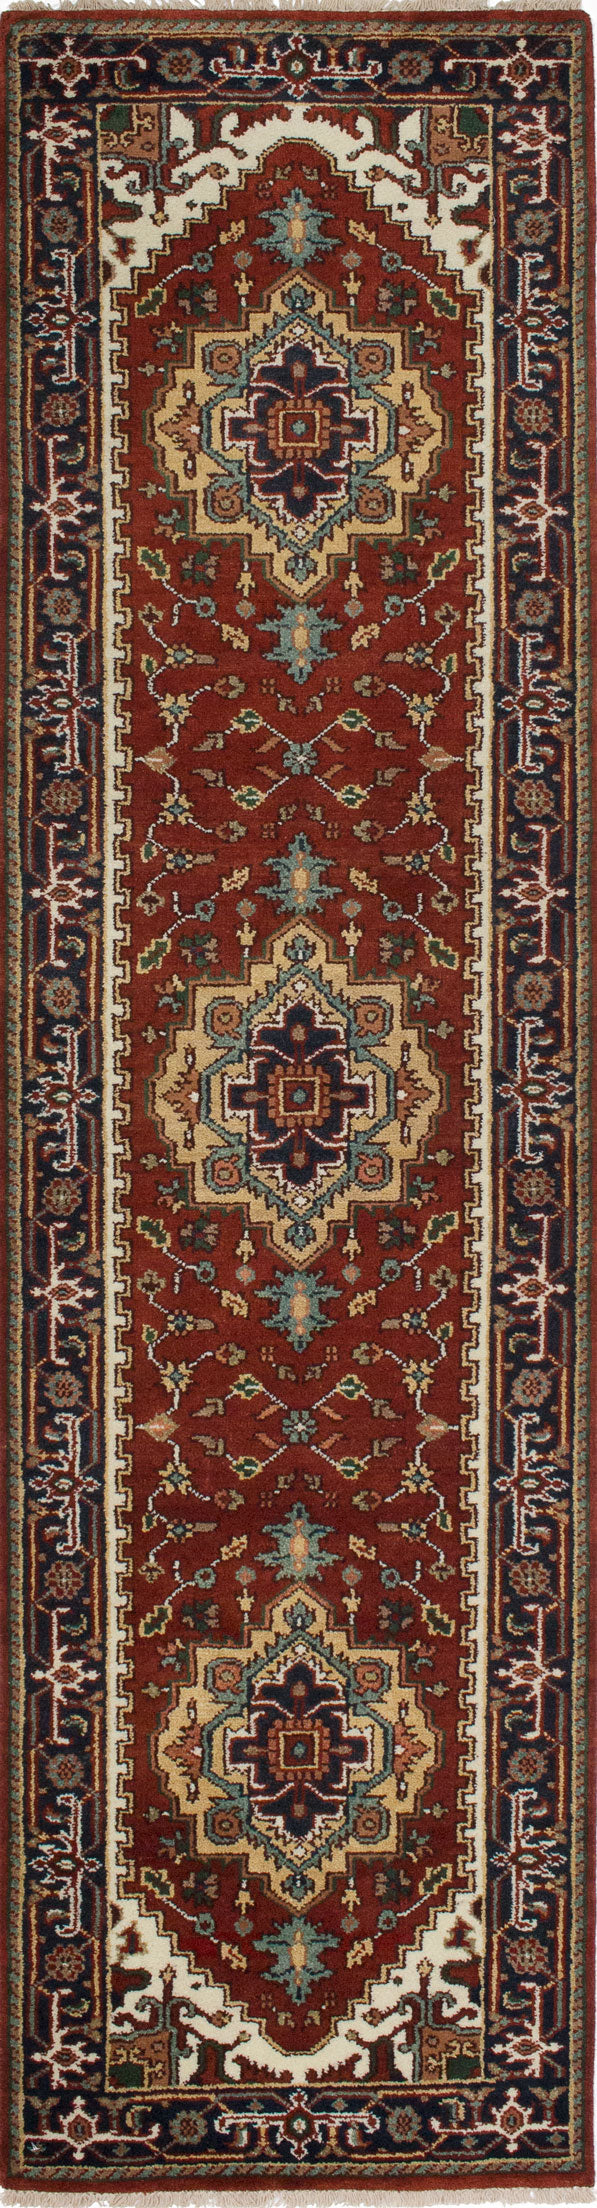 "Hand-knotted Indian Floral  Traditional Serapi-Heritage Runner rug  Dark Orange 2'6 x 10'0"" """